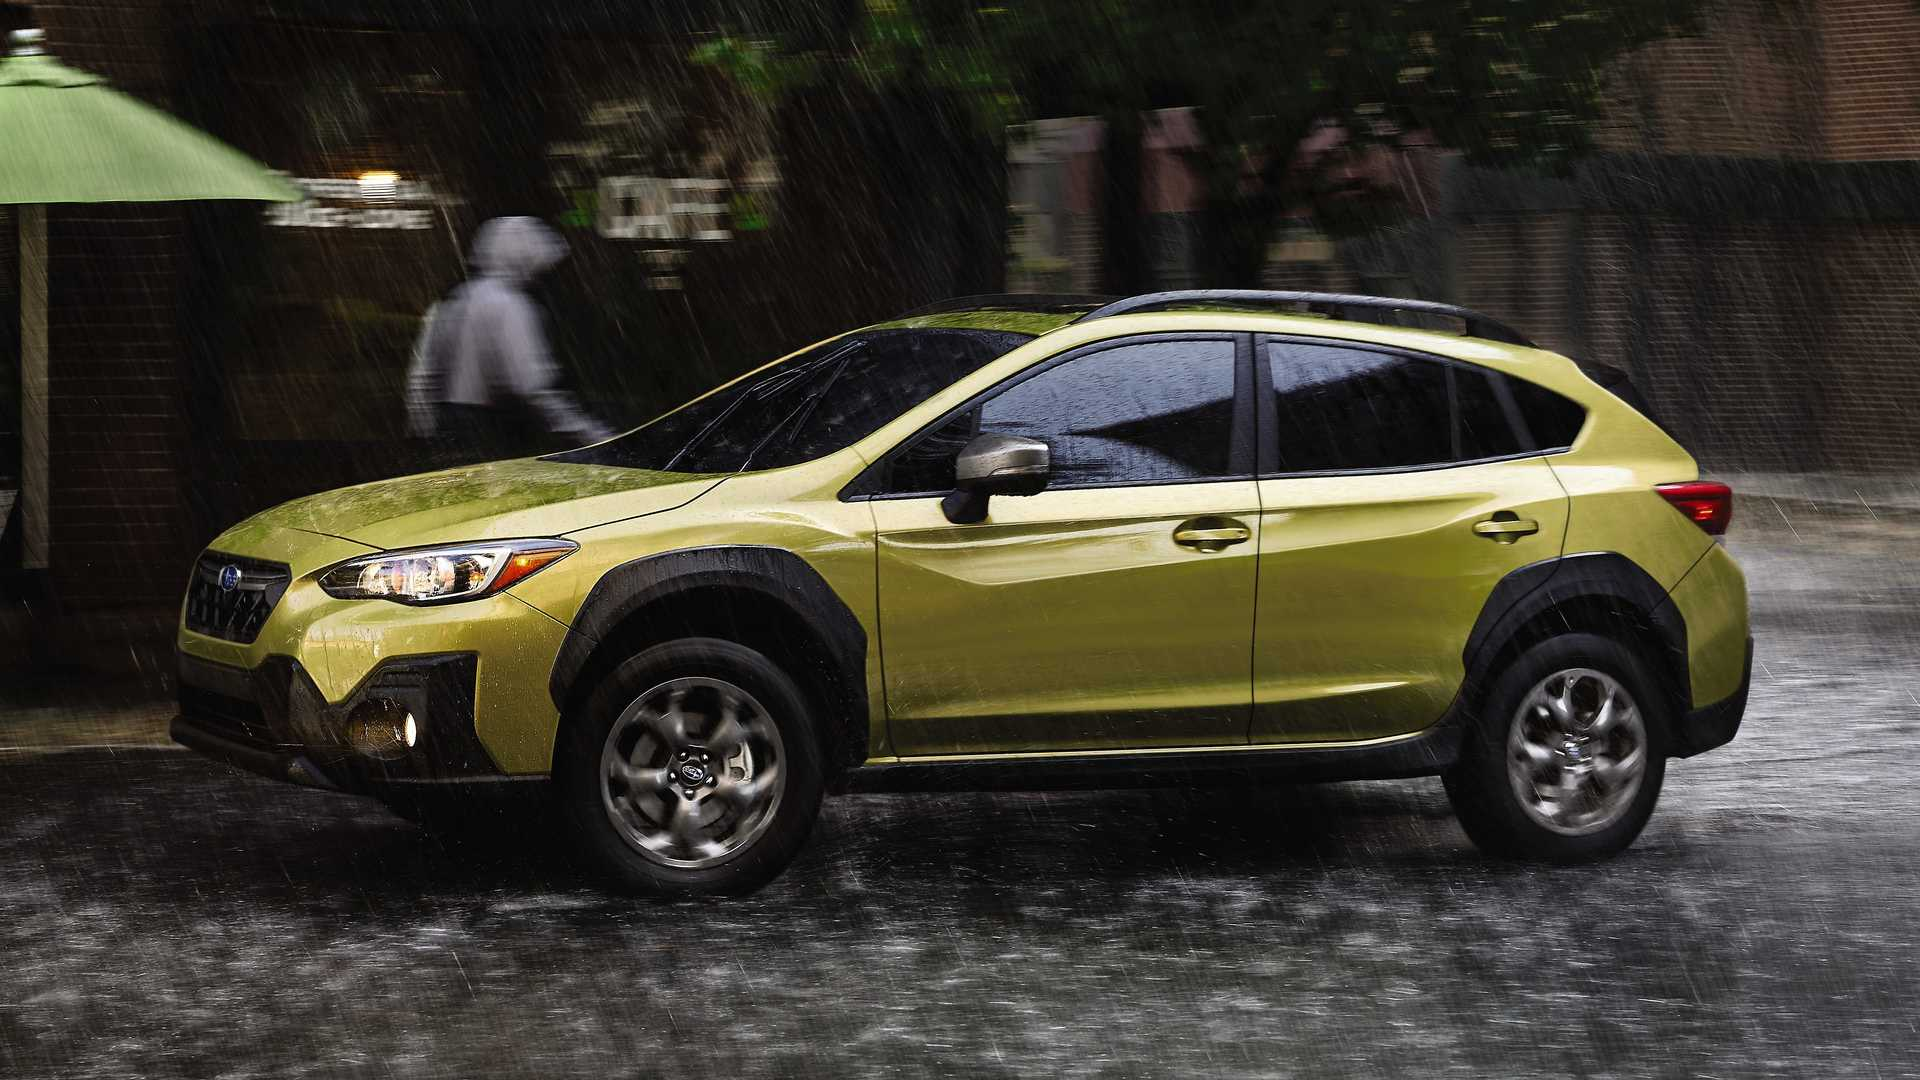 2021 Subaru Crosstrek Debuts With Refreshed Design Suspension And An Available 2 5 Liter Engine